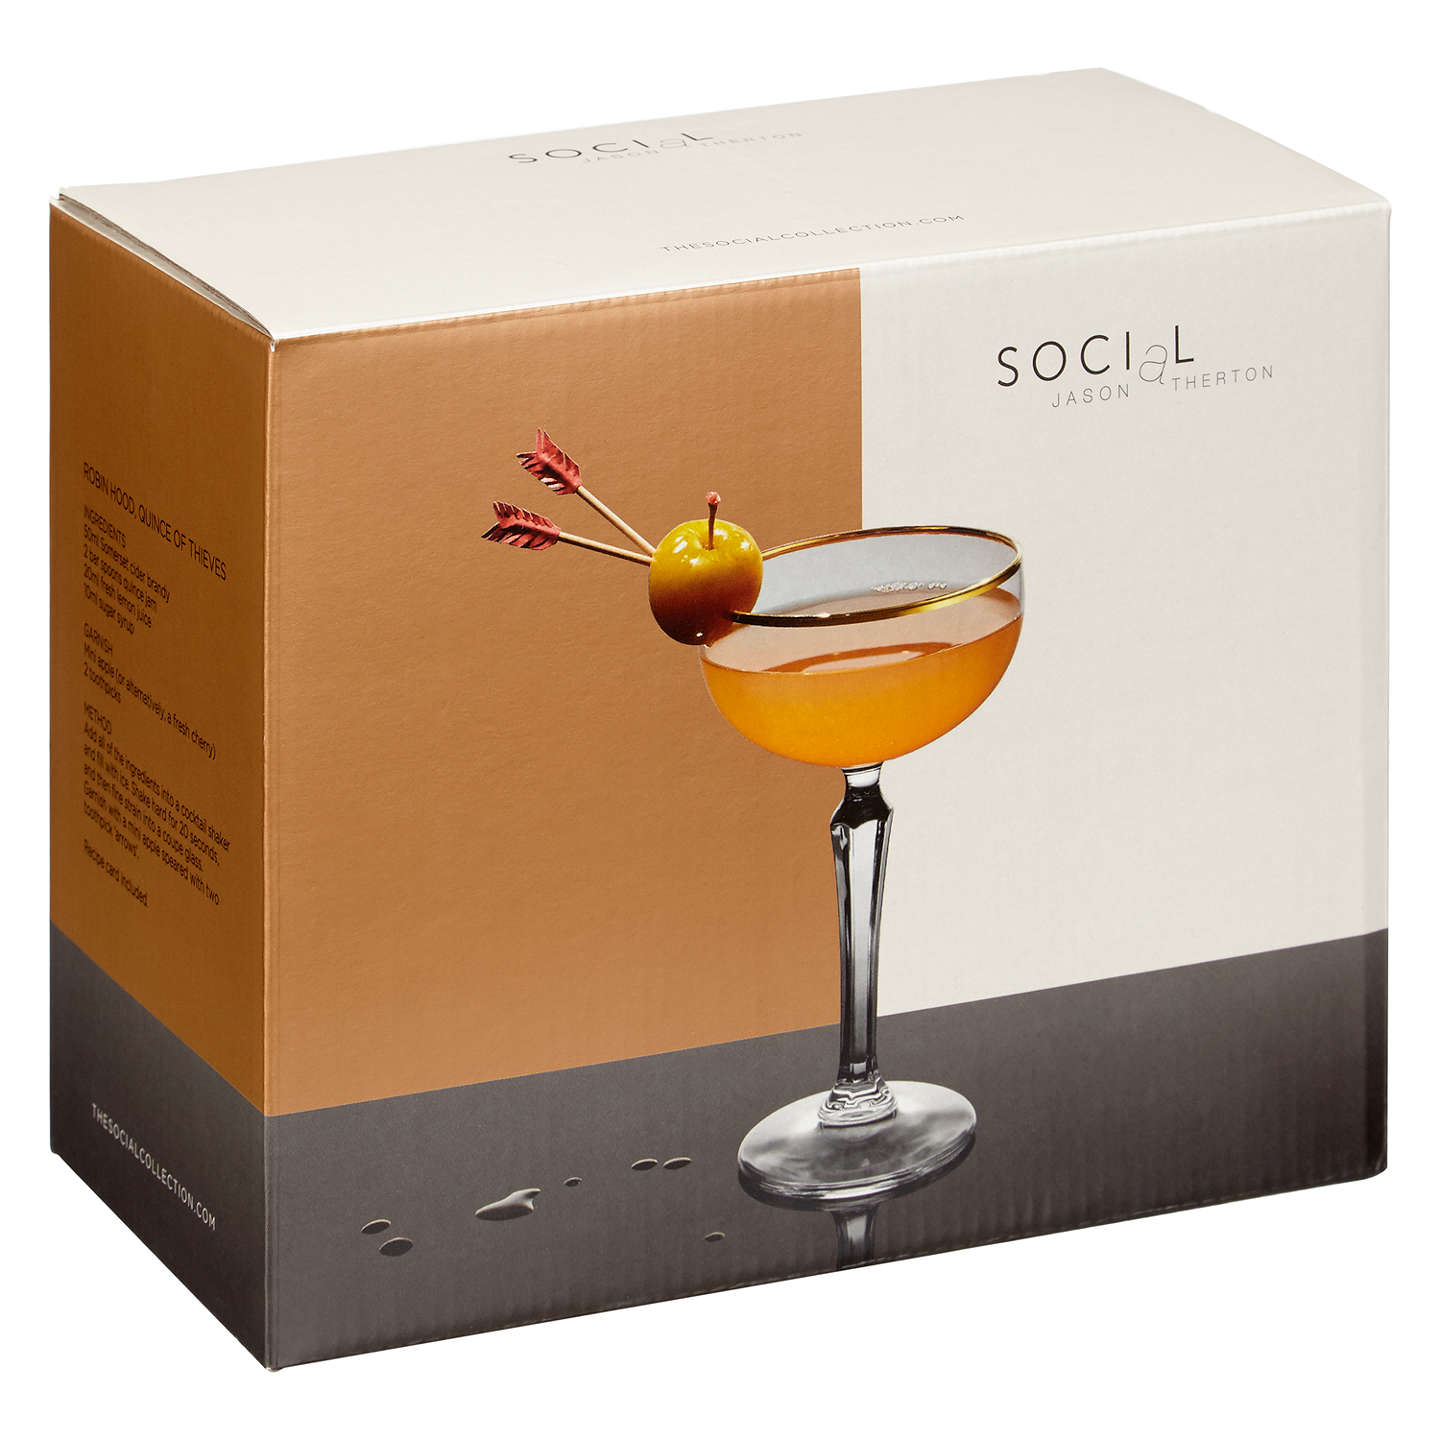 BuySocial by Jason Atherton Gold Band Coupe, Set of 2 Online at johnlewis.com